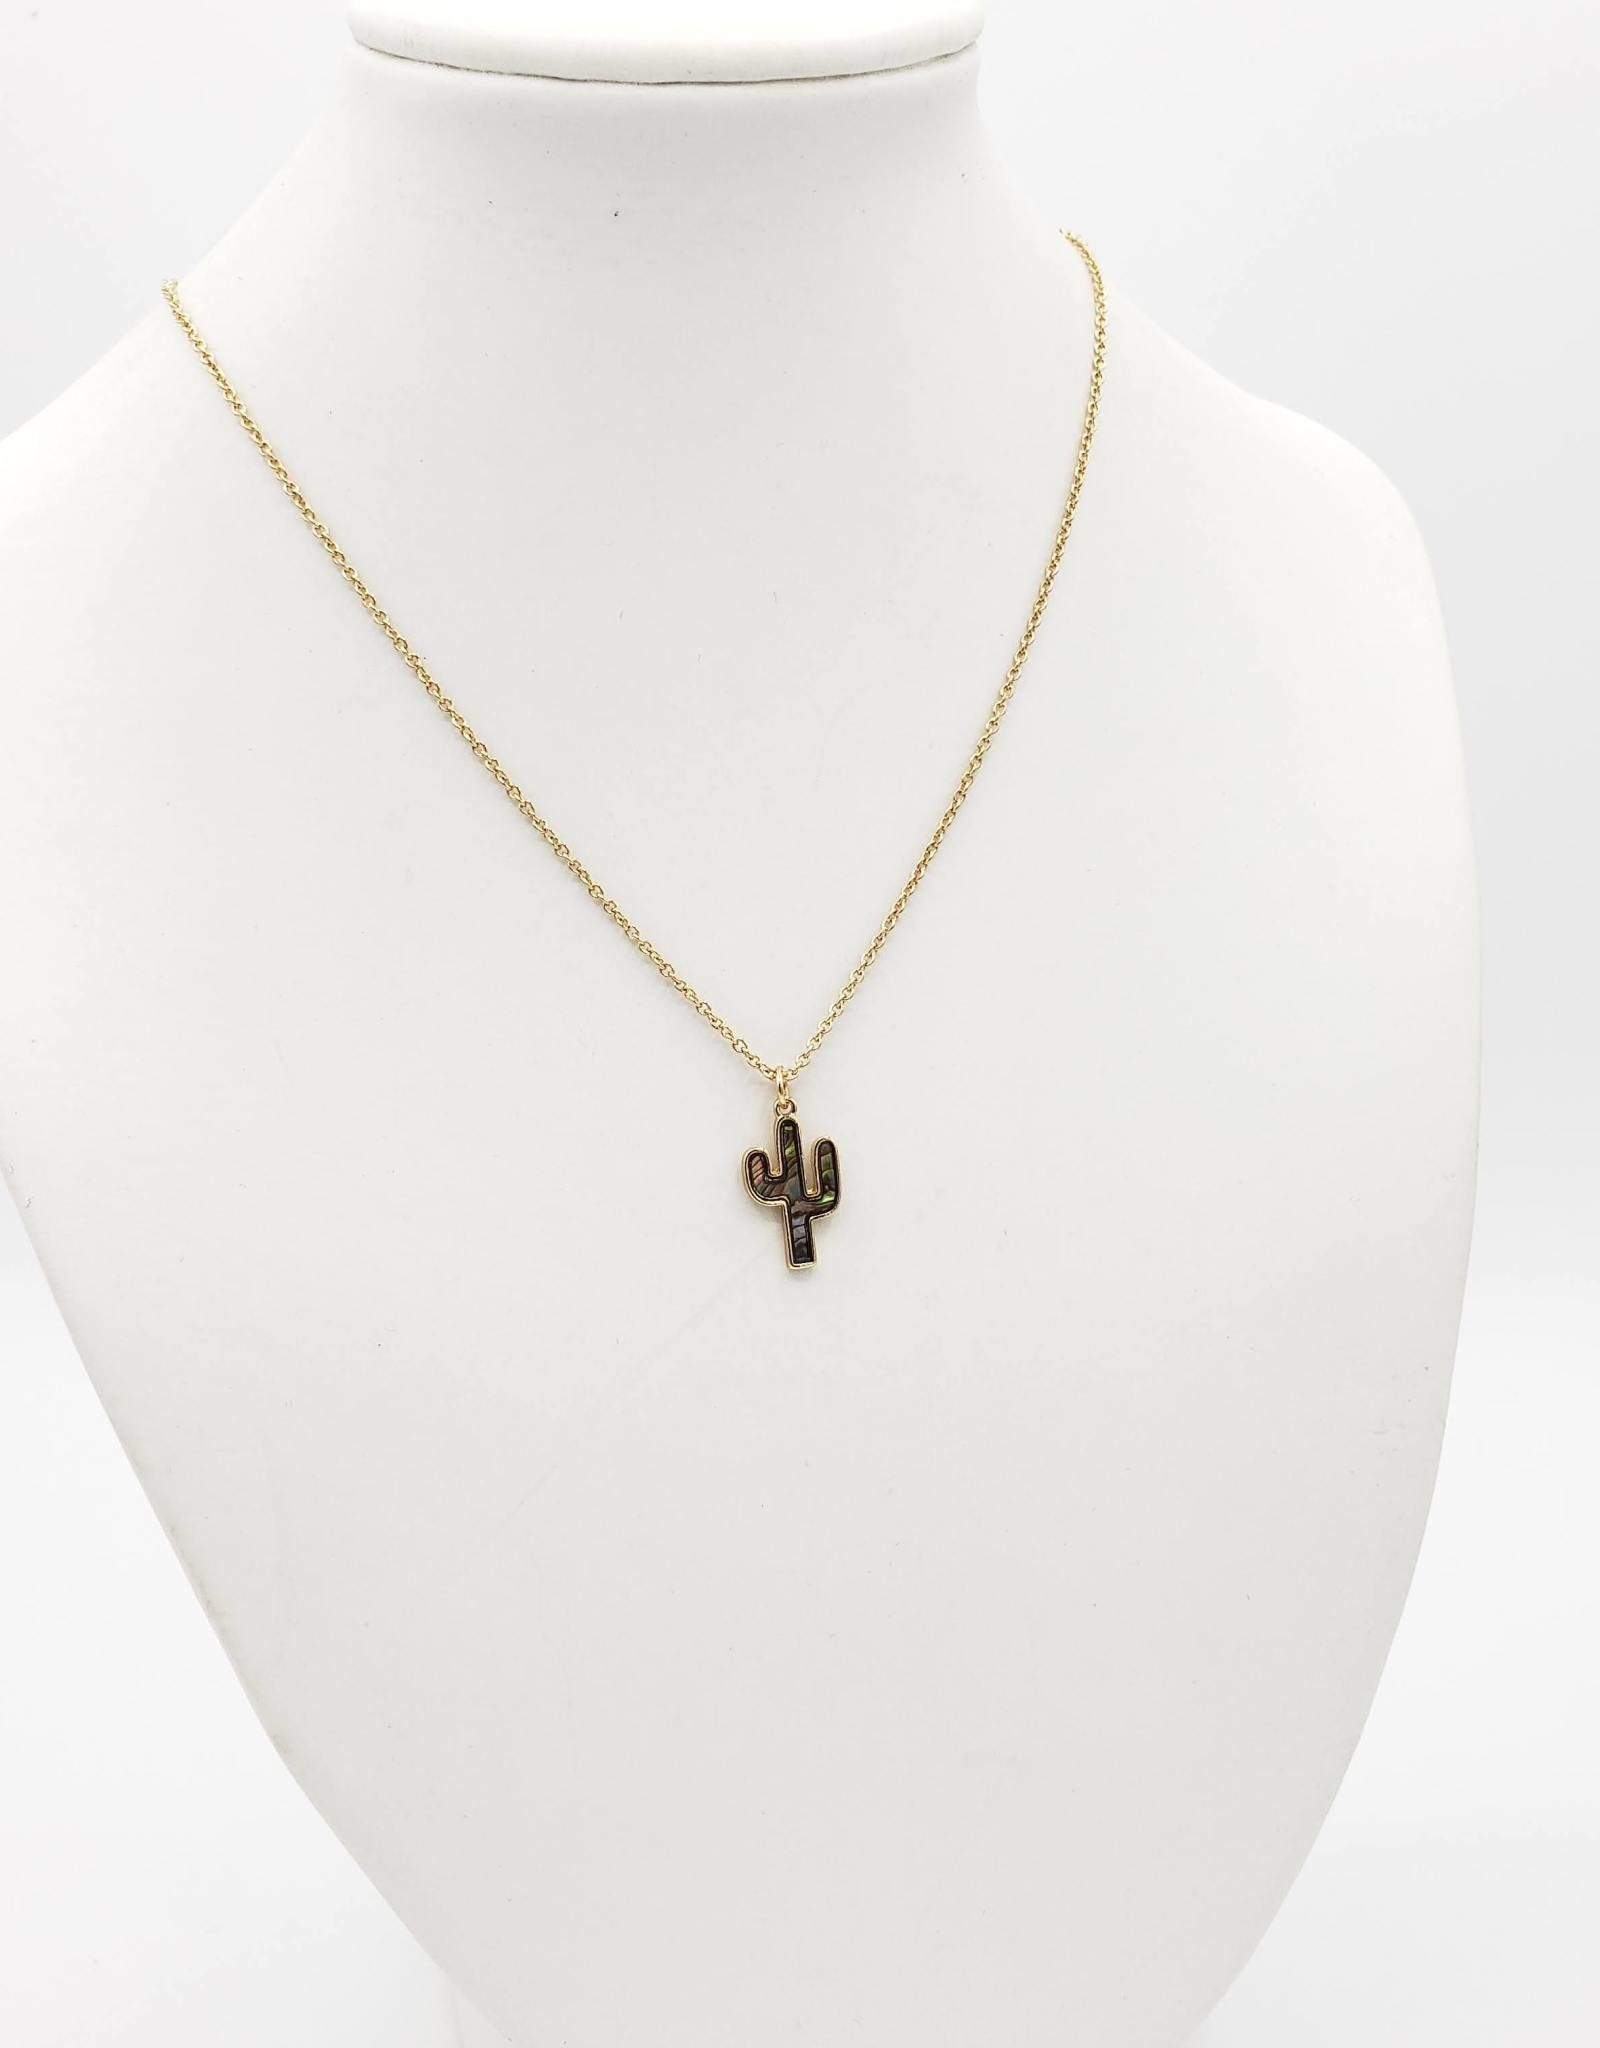 Shell Cactus Necklace, Gold plated